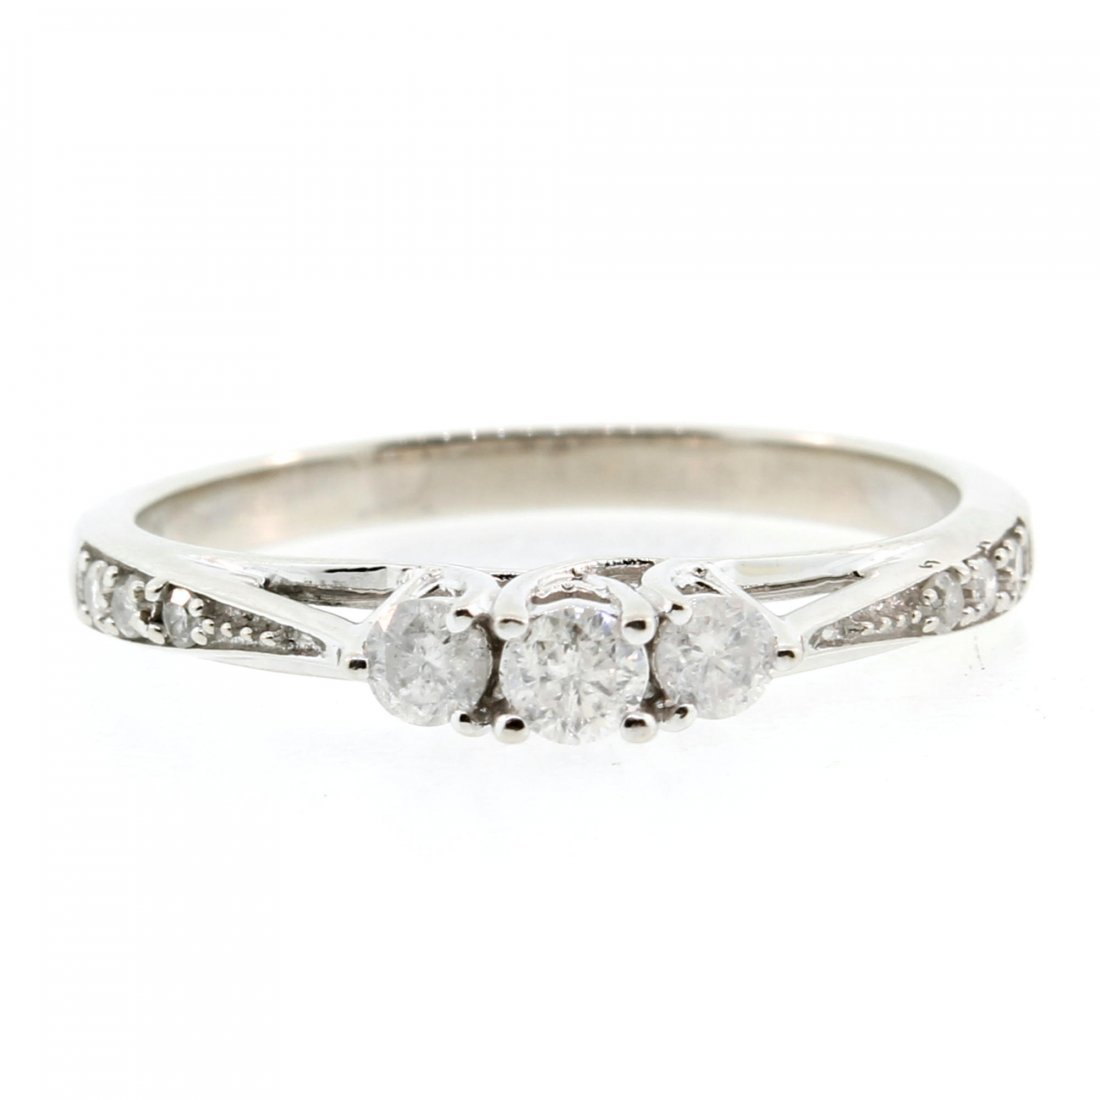 Vintage Estate 10K White Gold Three Stone Diamond